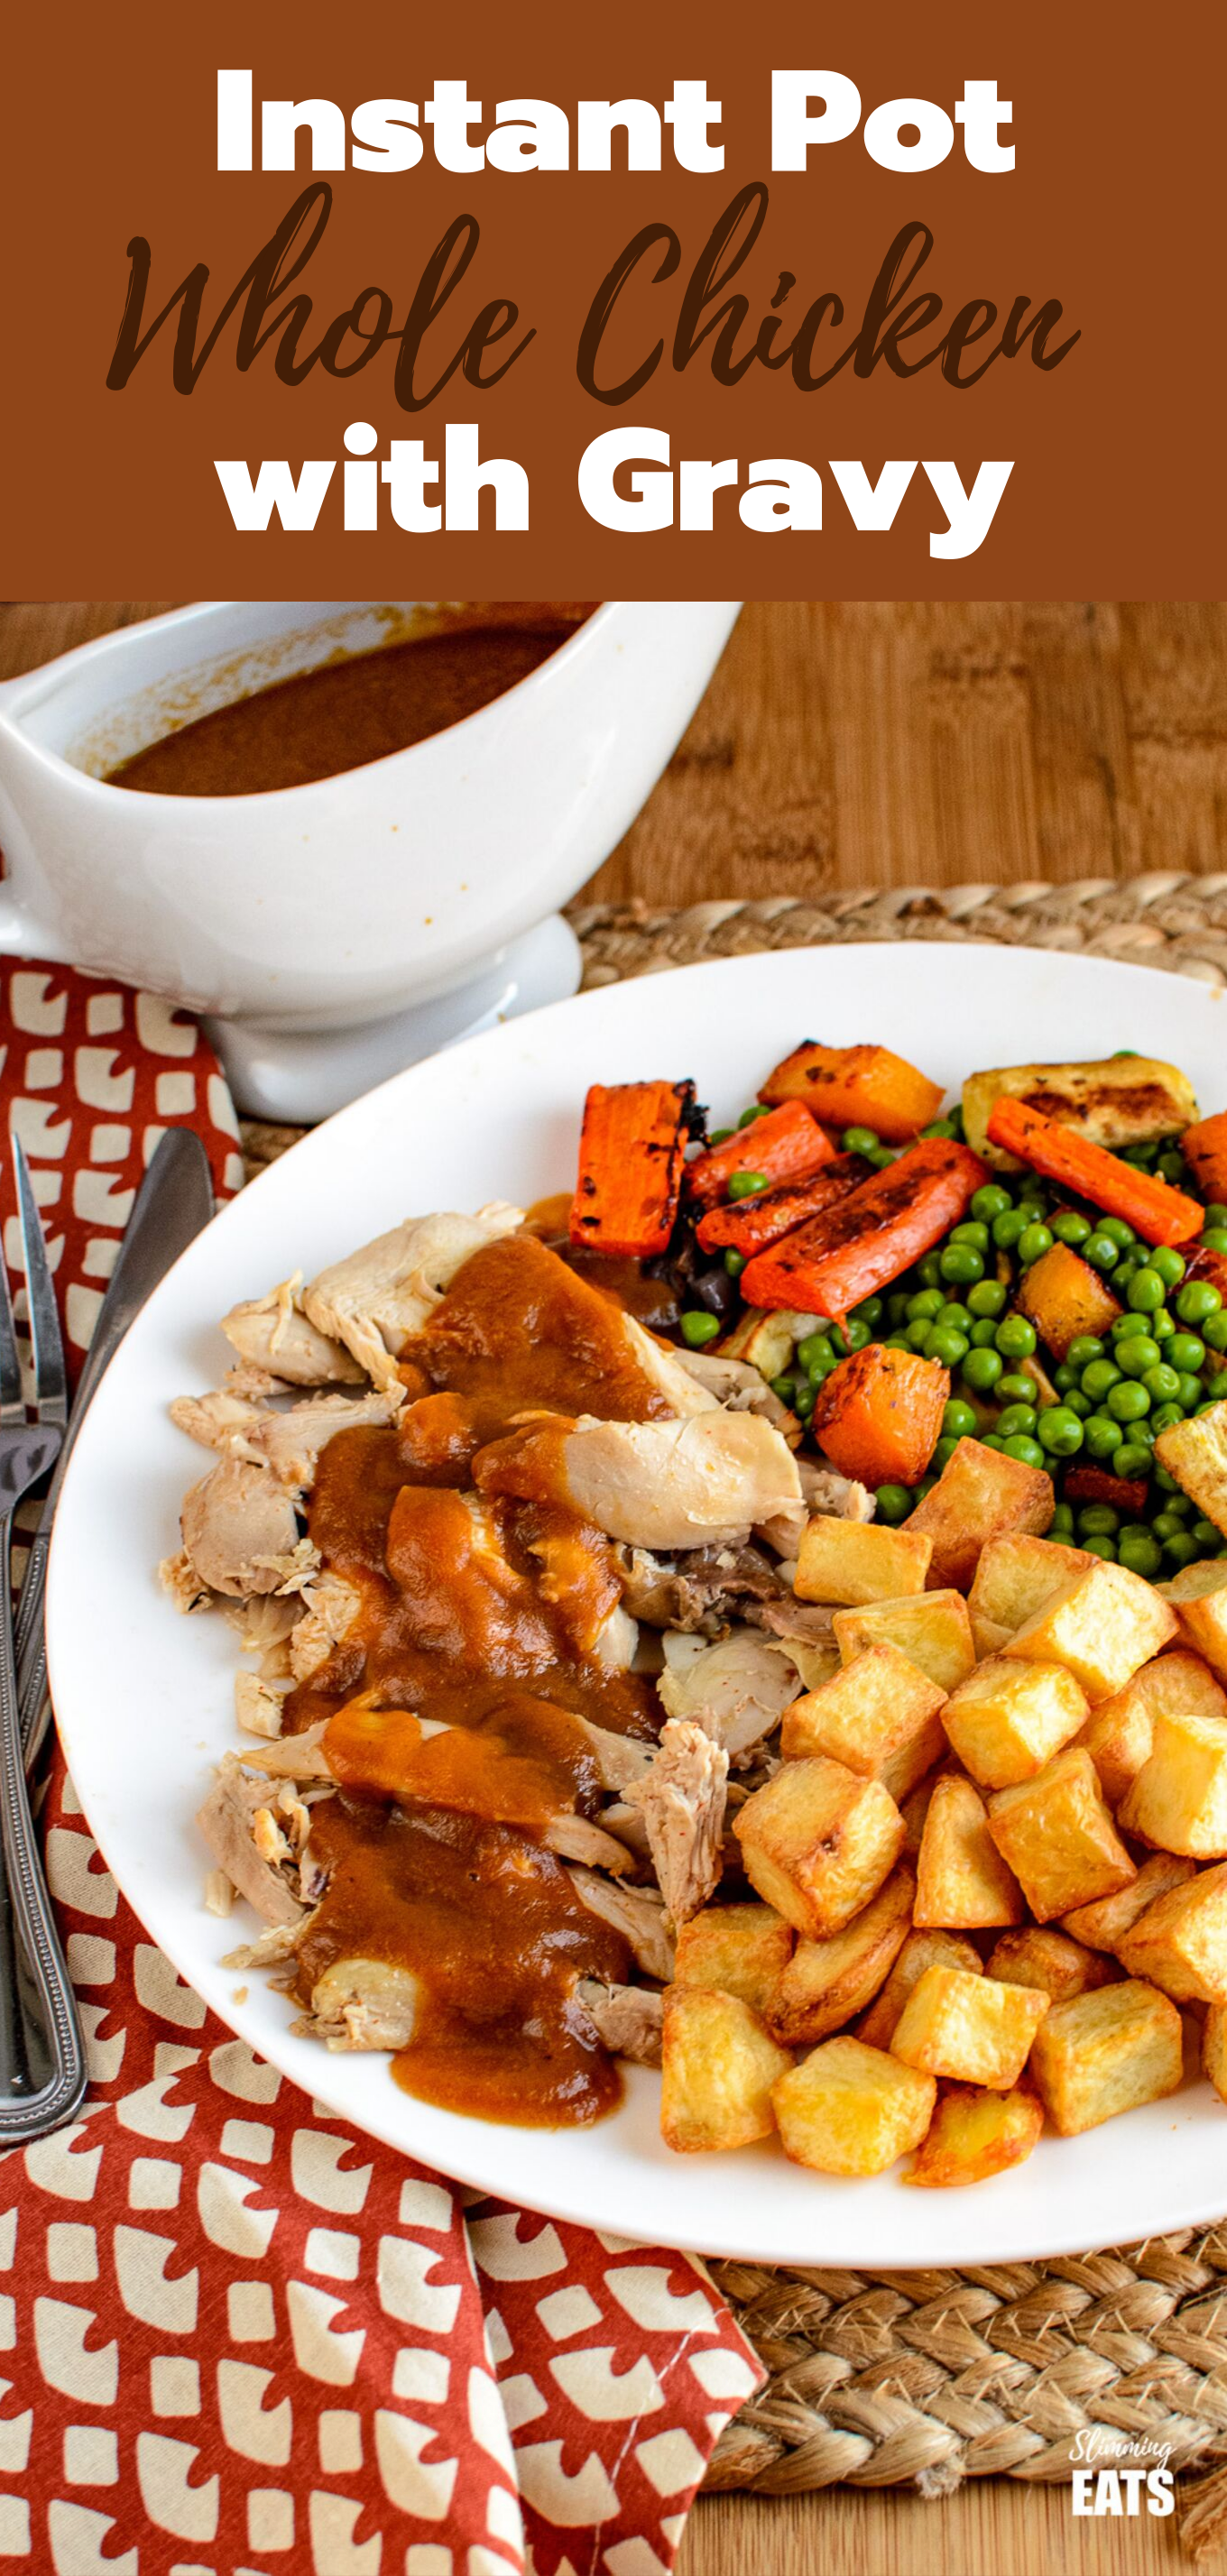 Instant Pot whole chicken with gravy pin image